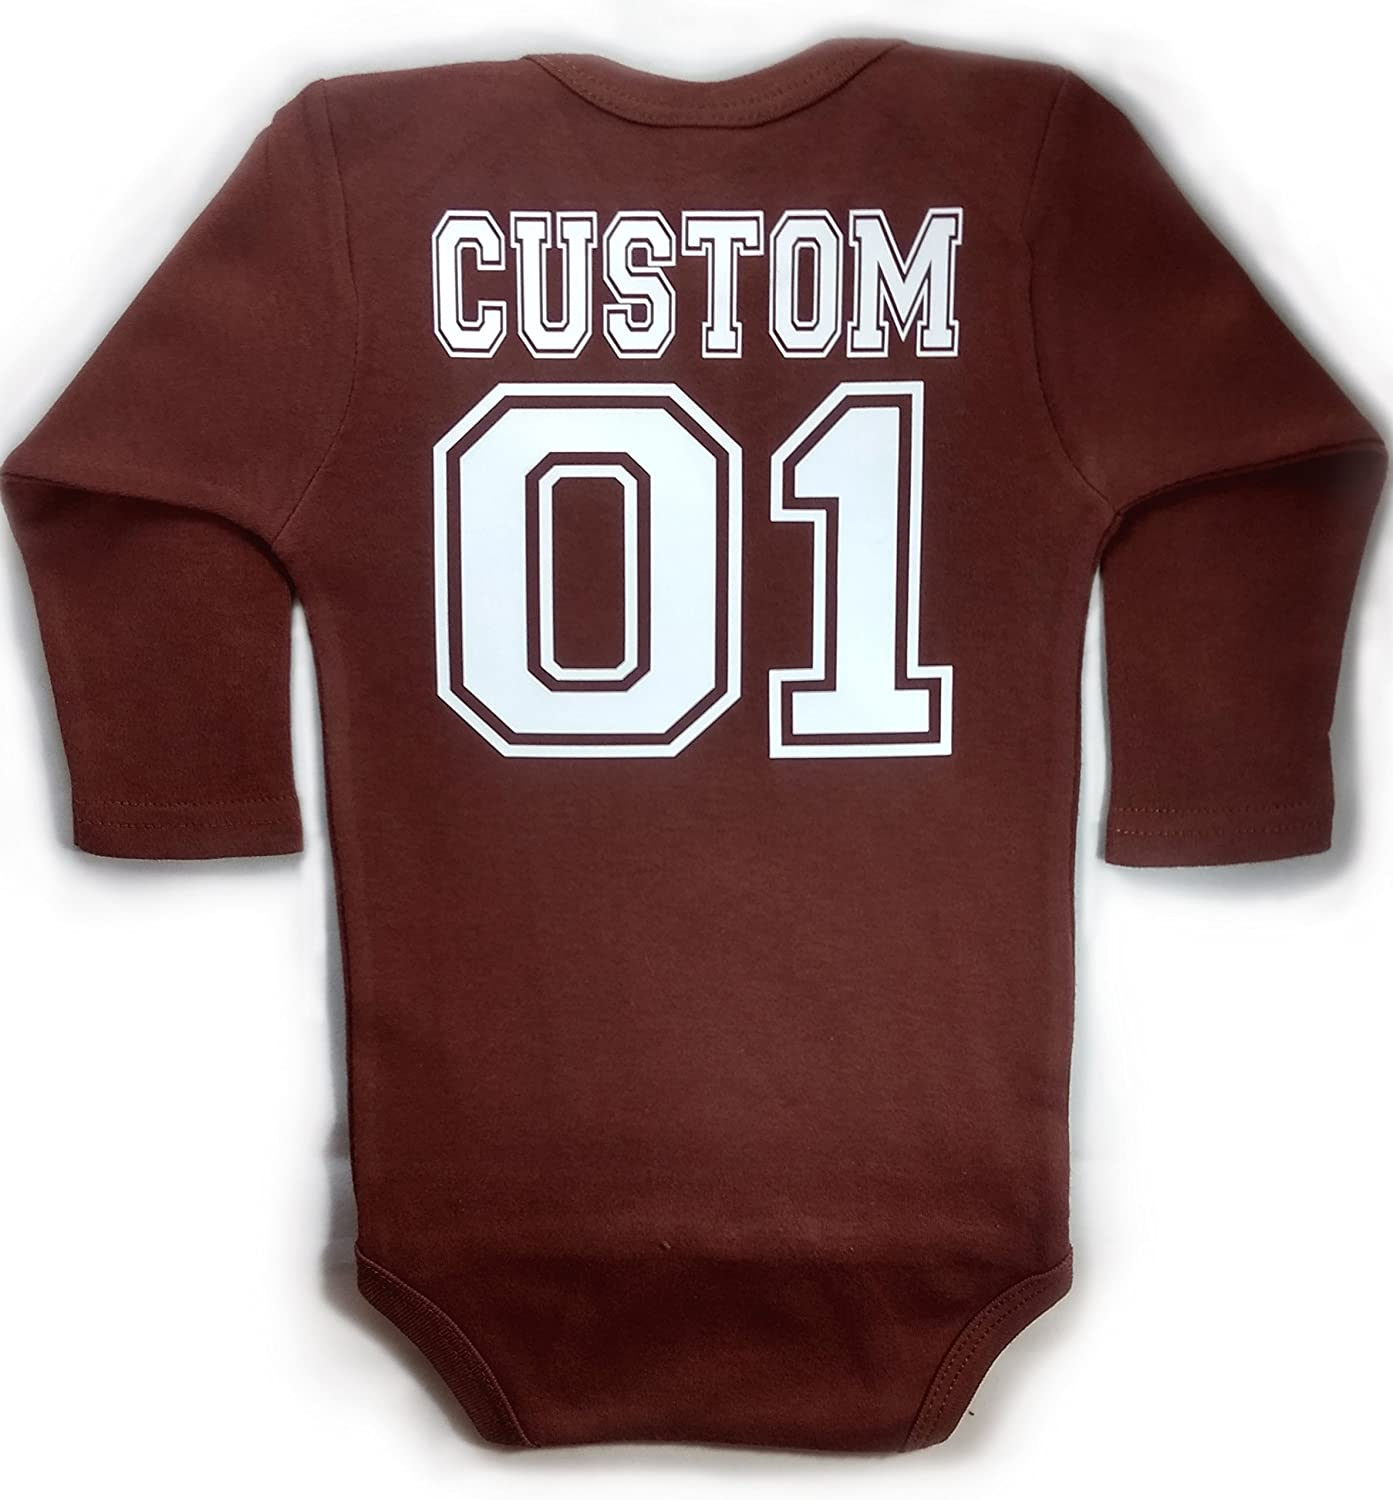 Chamuco Customs Baby Football Long Sleeve with Custom Personalized Back Baby Bodysuit Brown Unisex